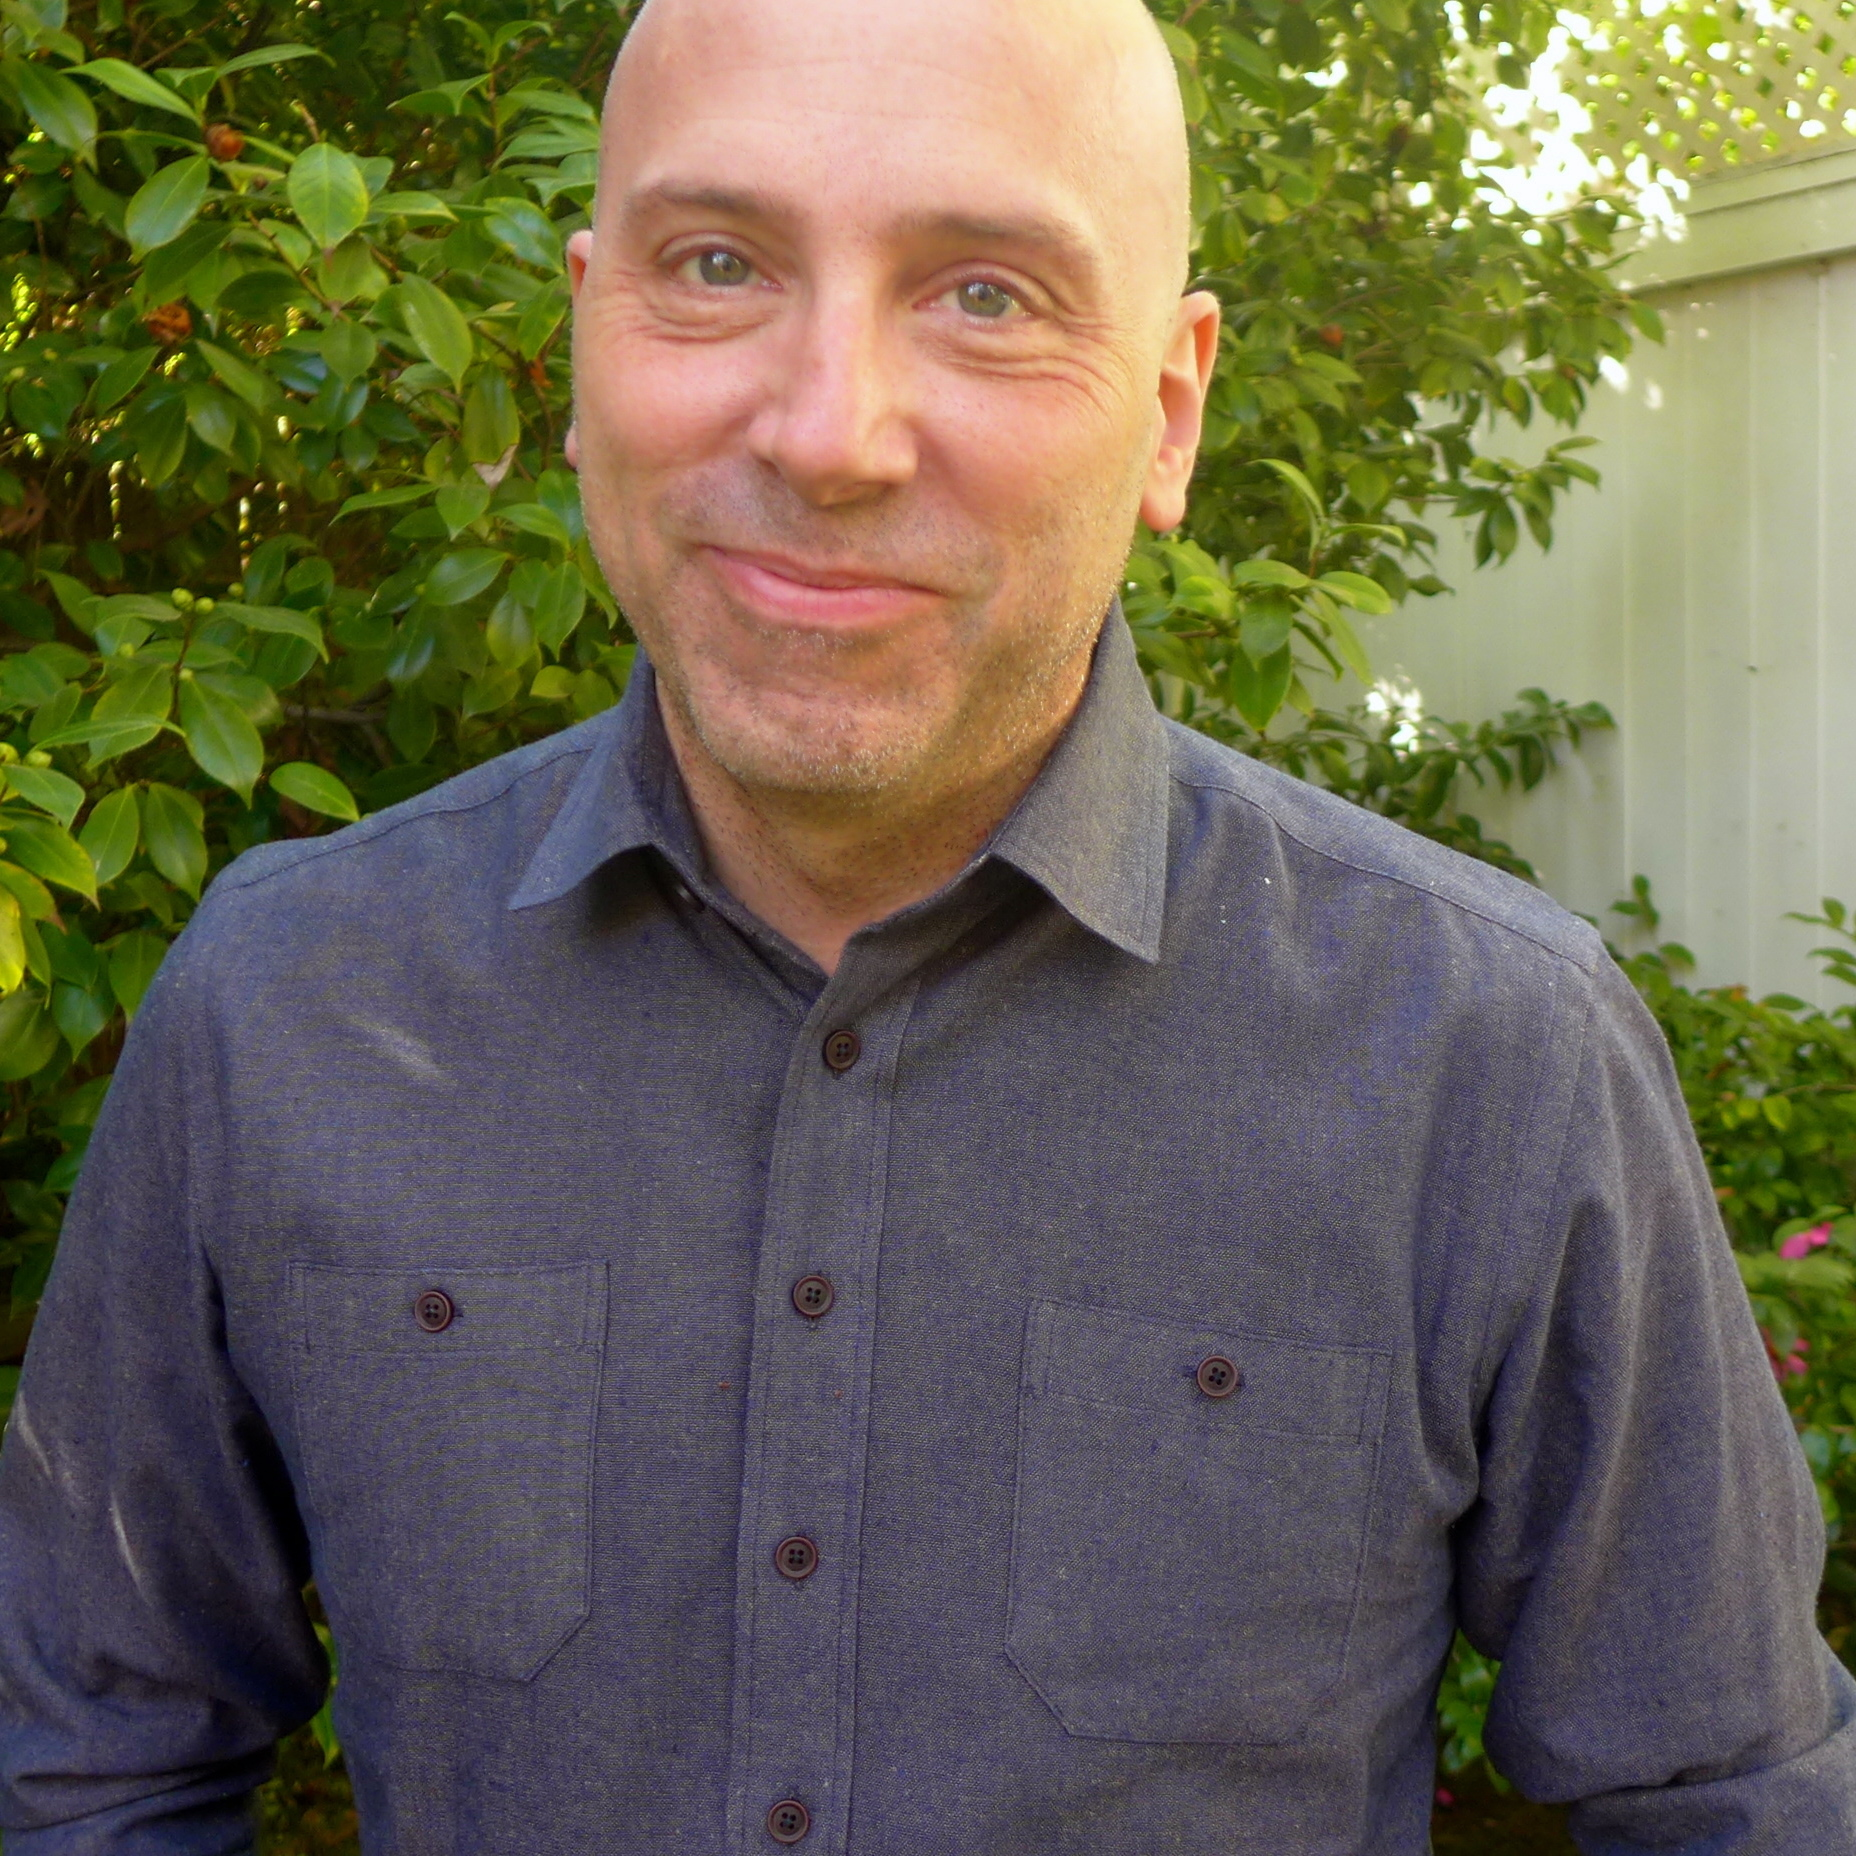 Steve Lickteig is the senior producer for NPR's Weekend All Things Considered in Los Angeles.